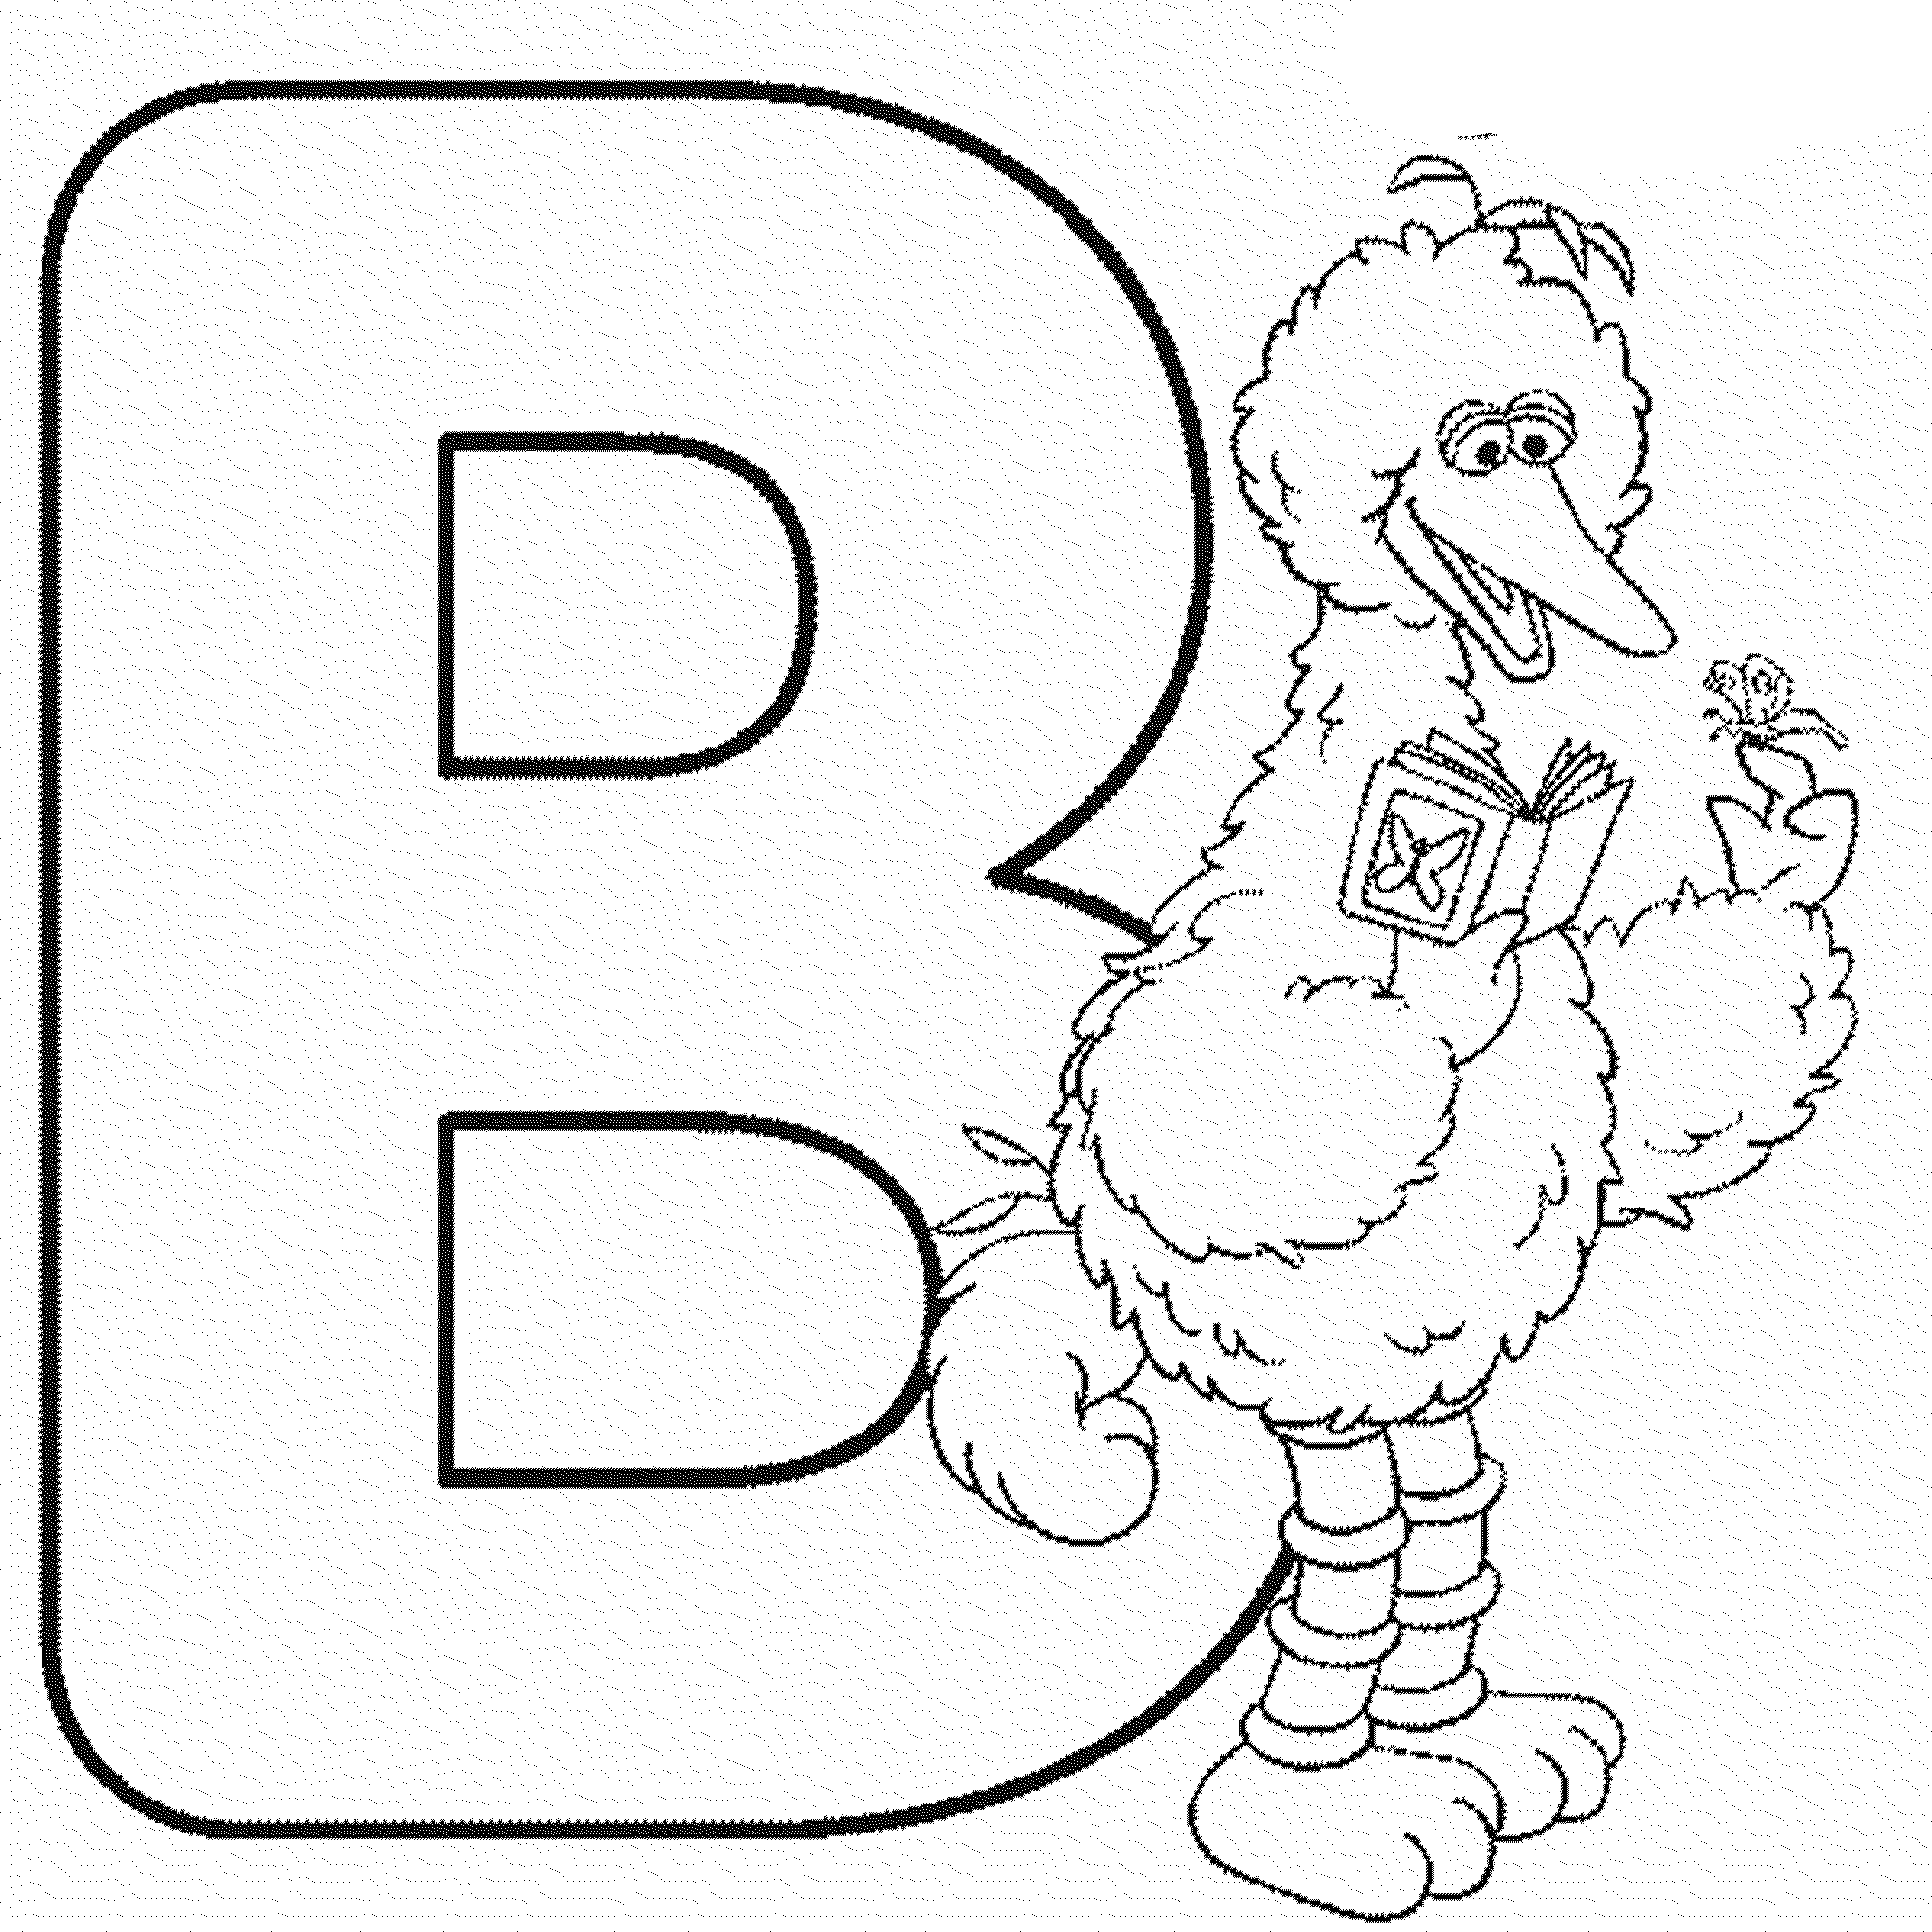 alphabet b coloring pages free printable alphabet coloring pages for kids best alphabet pages coloring b